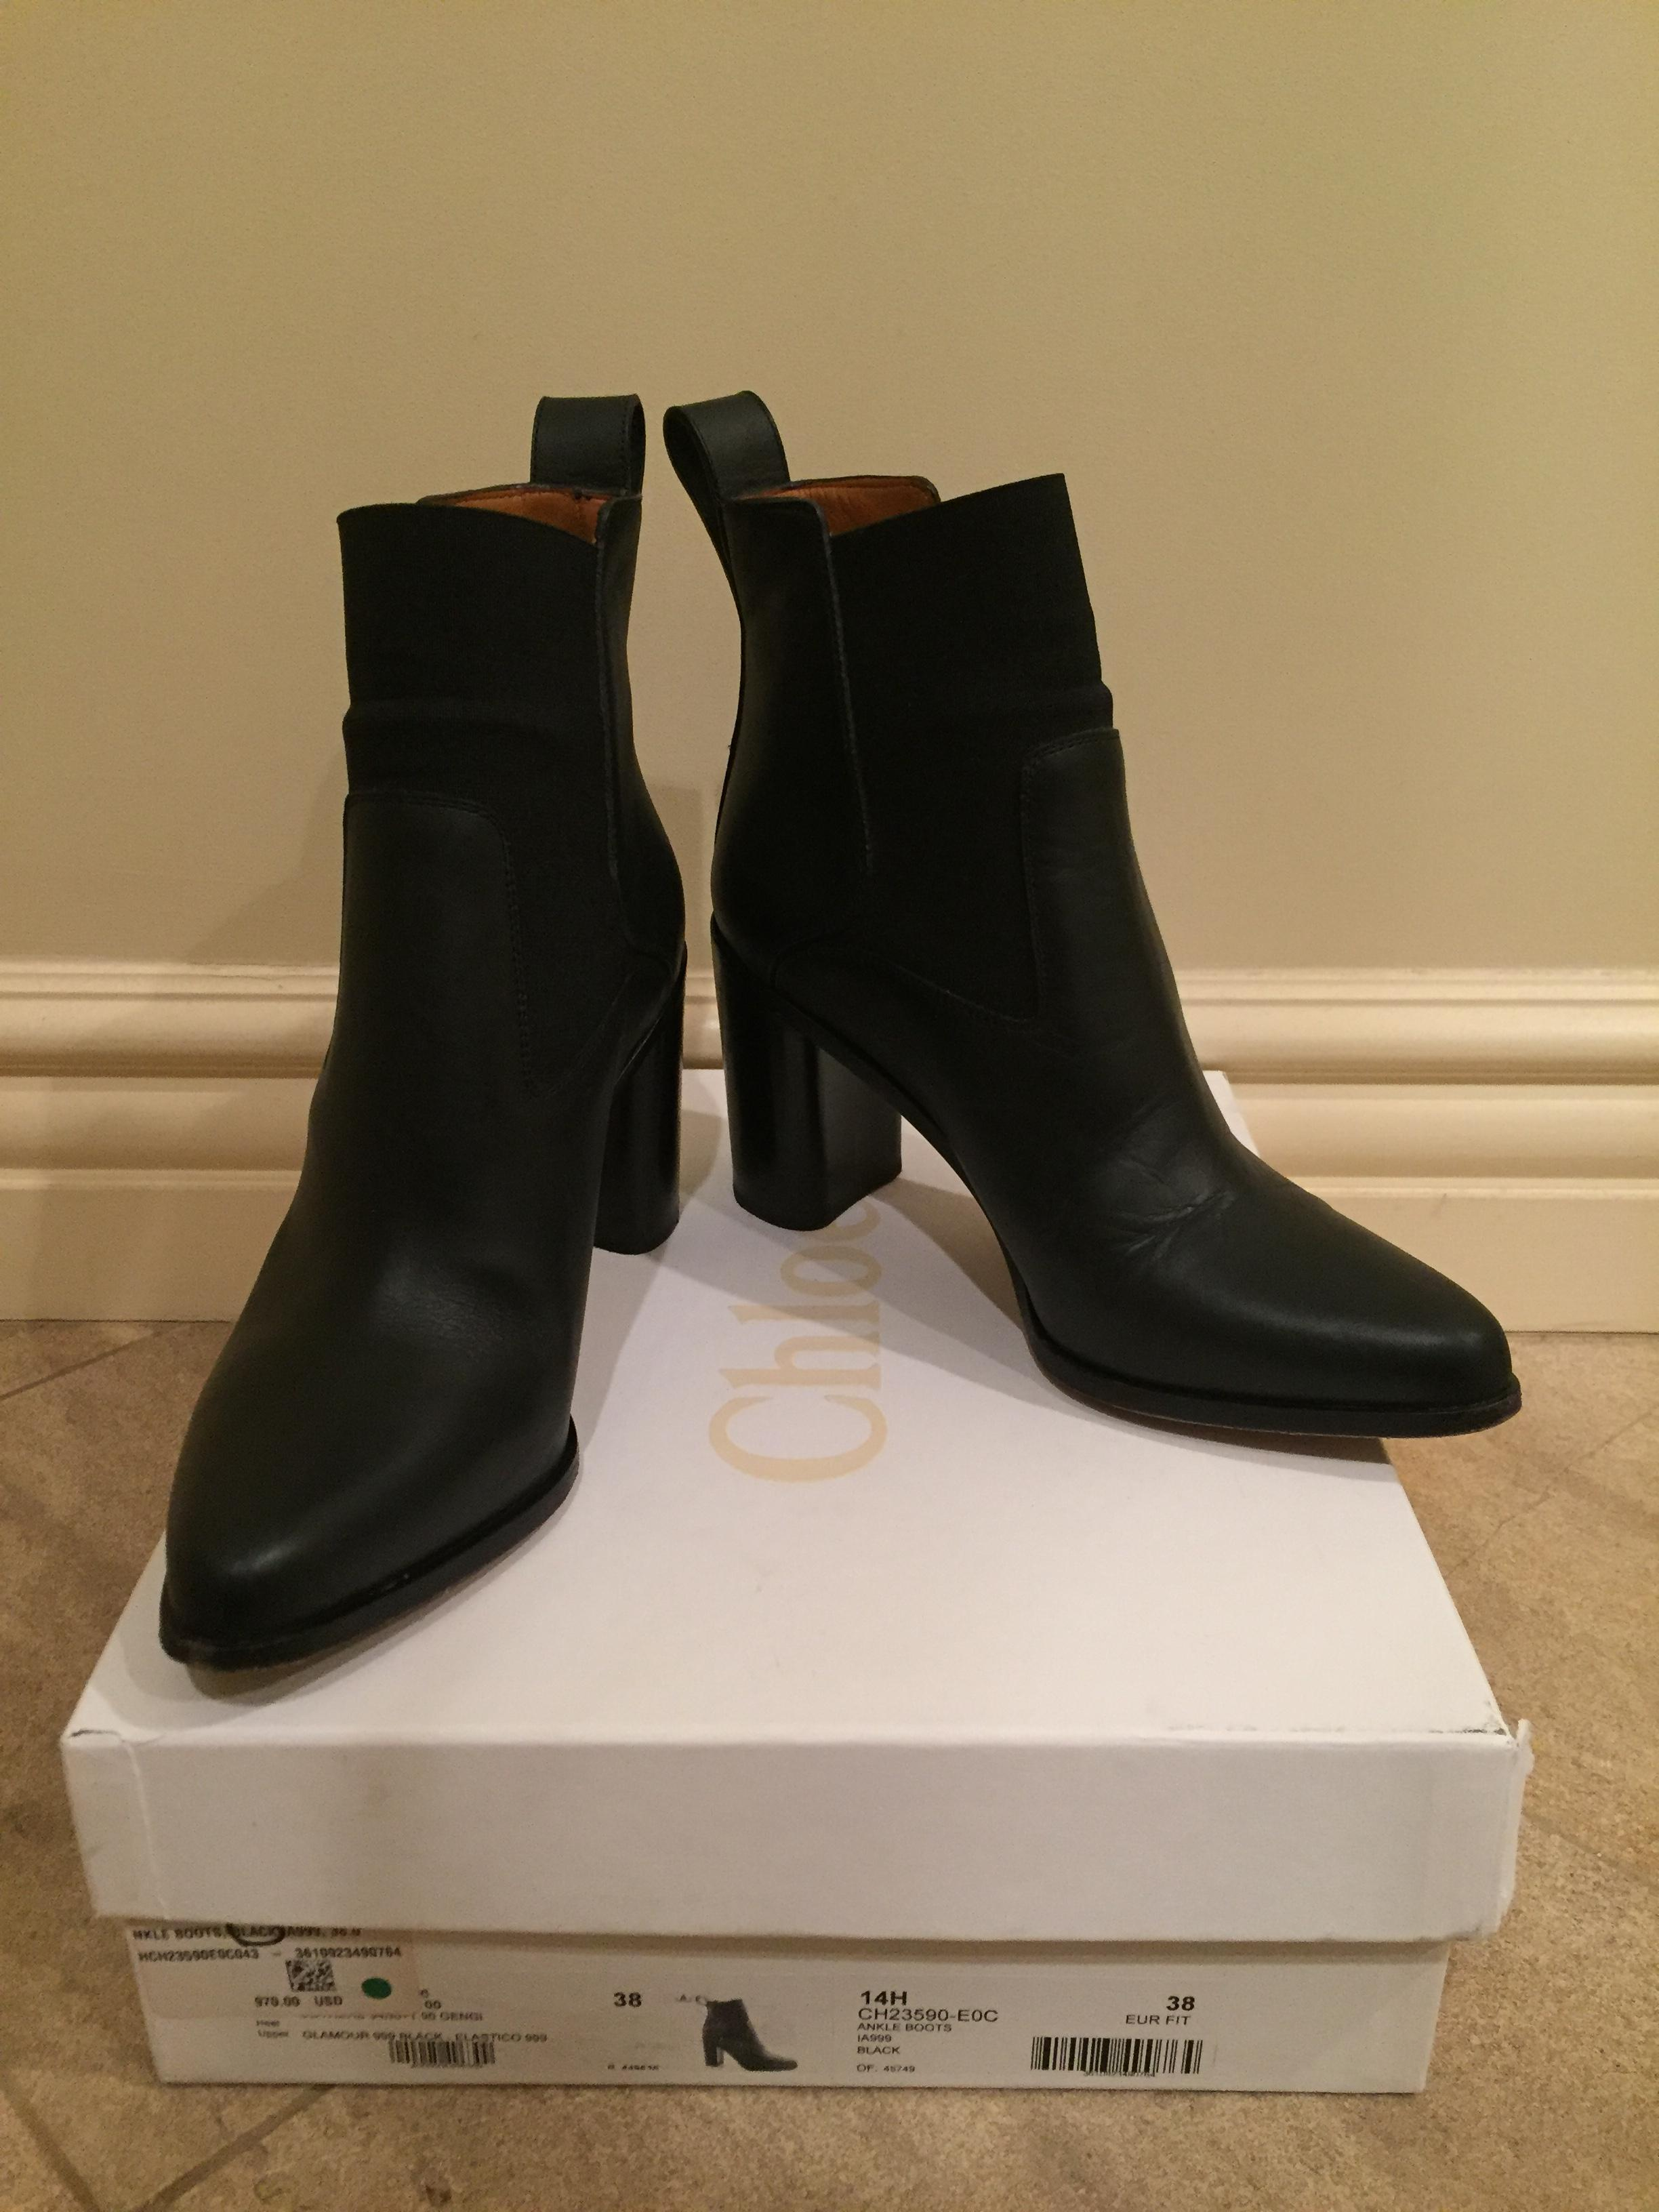 2014 new cheap online low cost Chloé Pointed-Toe Ankle Boots buy cheap 2014 0DnvHgAI